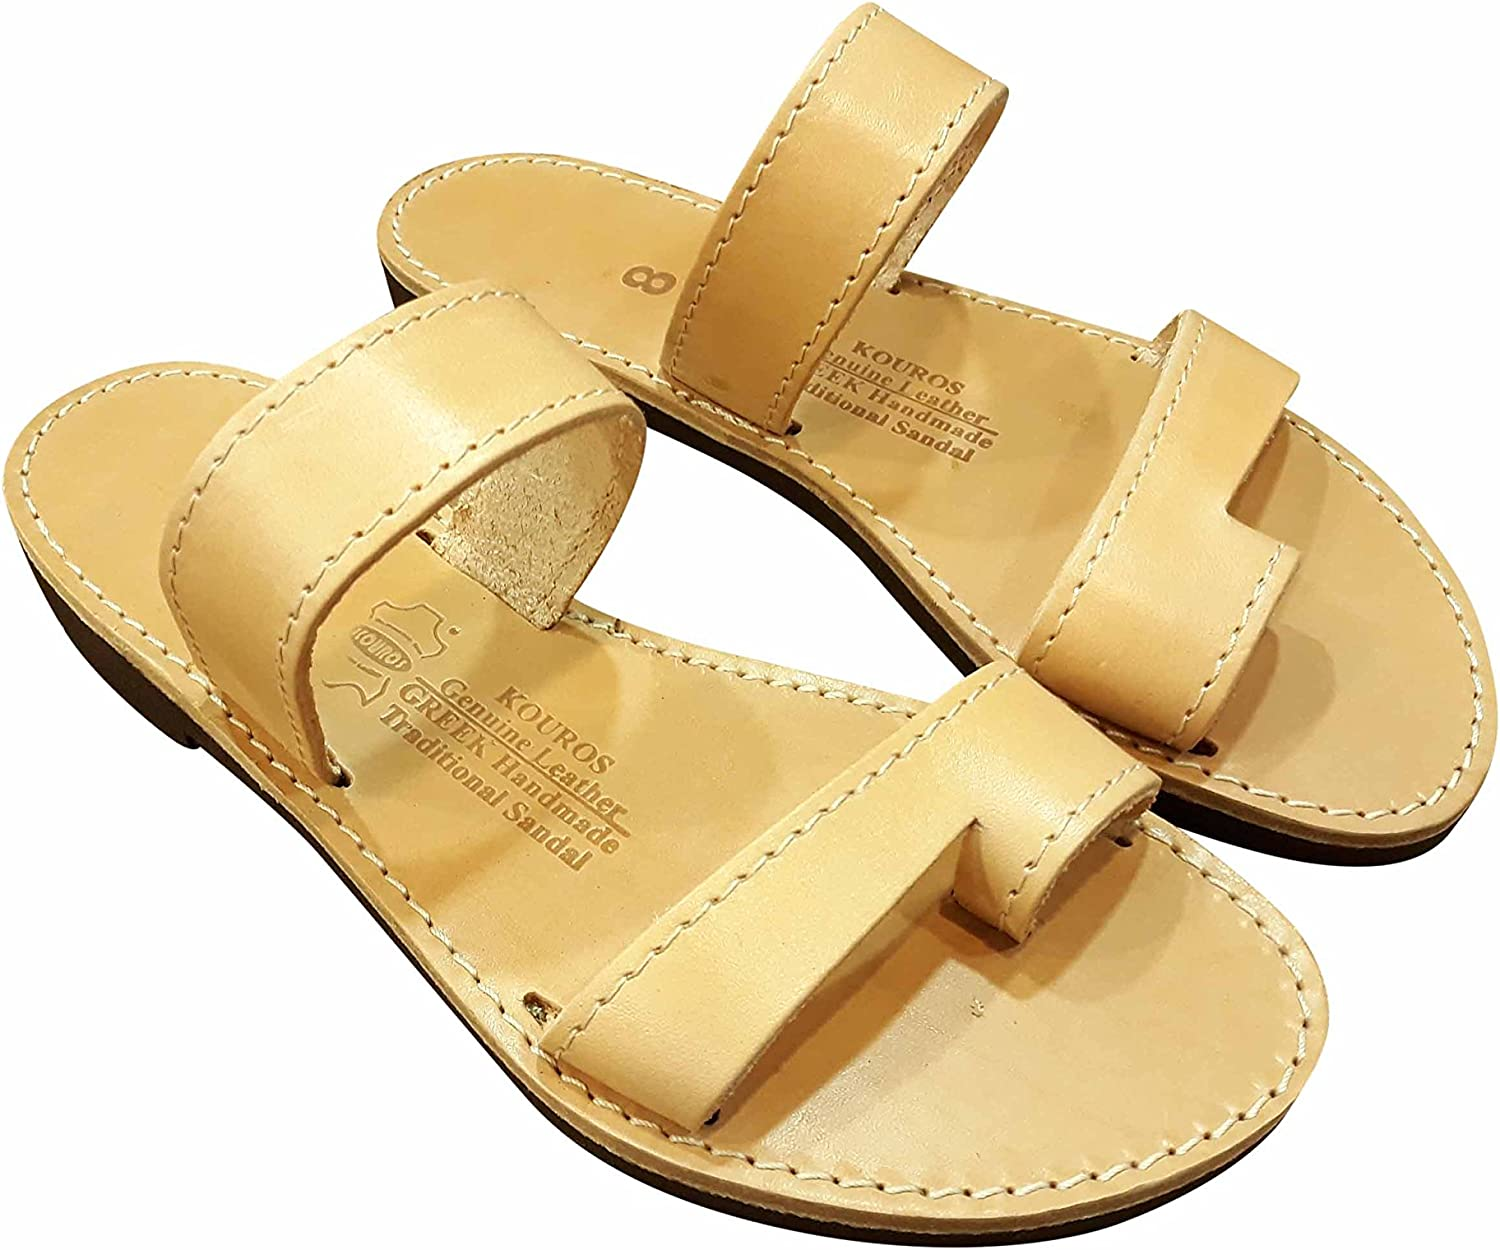 Everyday Shoes for Men GREECE Greek style Roman Spartan Grecian Leather Slides Flats Sandals New Men/'s Leather Summer Flat Summer Sandals